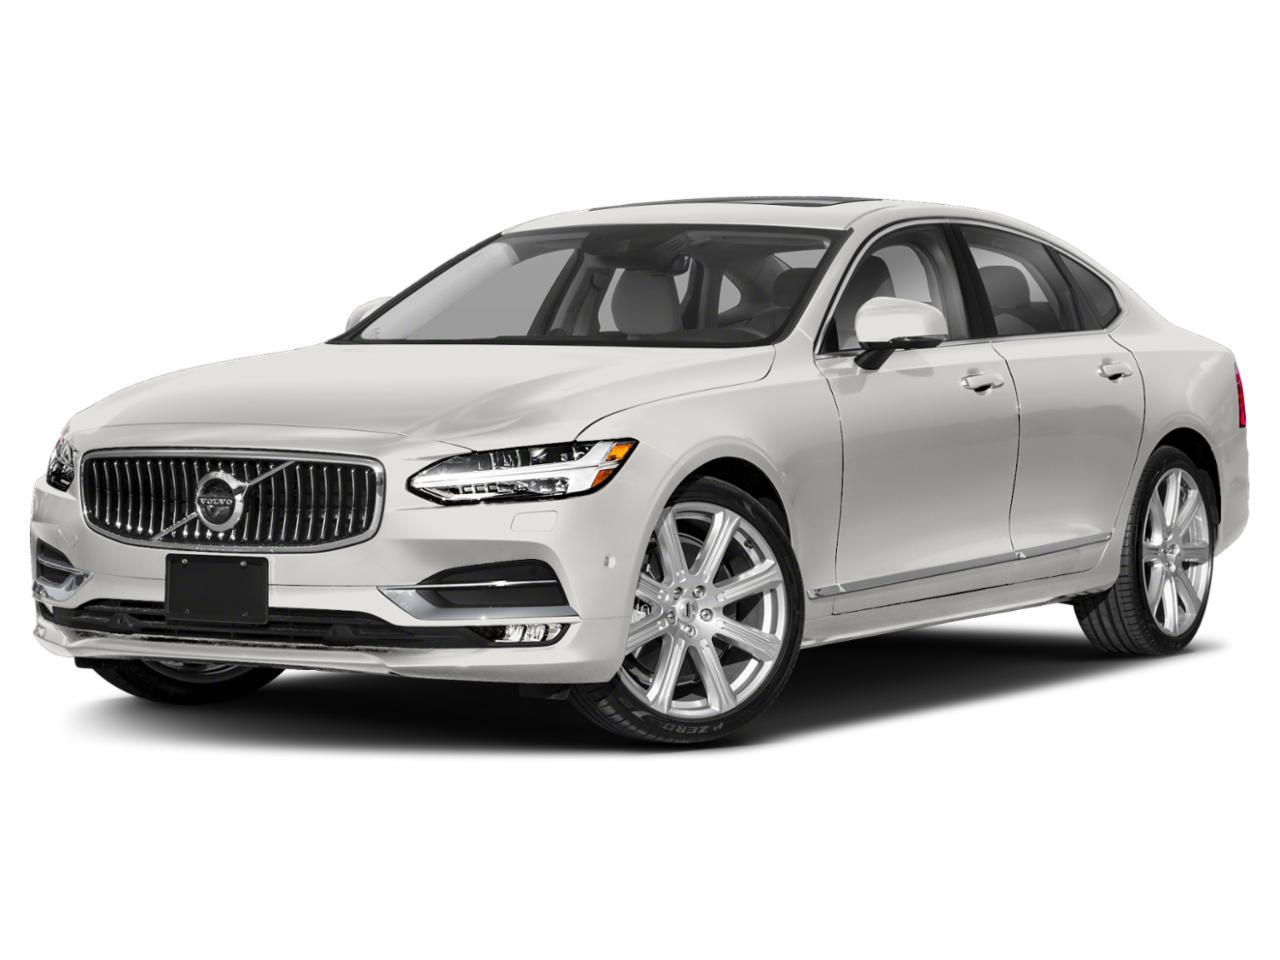 2020 Volvo S90 Vehicle Photo in Grapevine, TX 76051